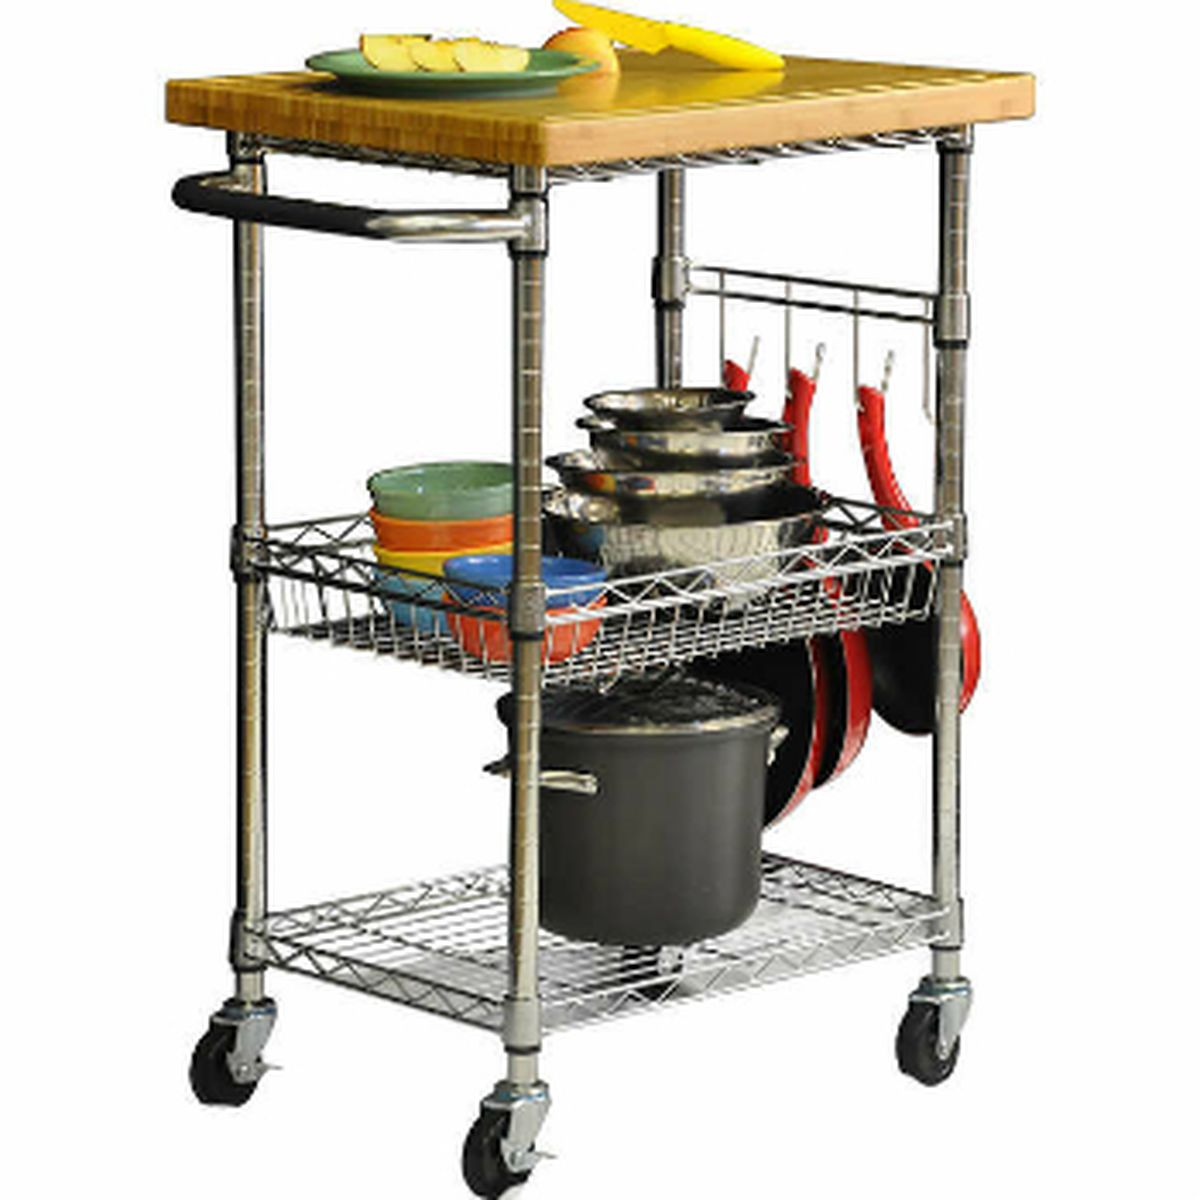 Crosley Roots Rack Industrial Kitchen Cart: 10 Ikea Essentials And Their Best Alternatives